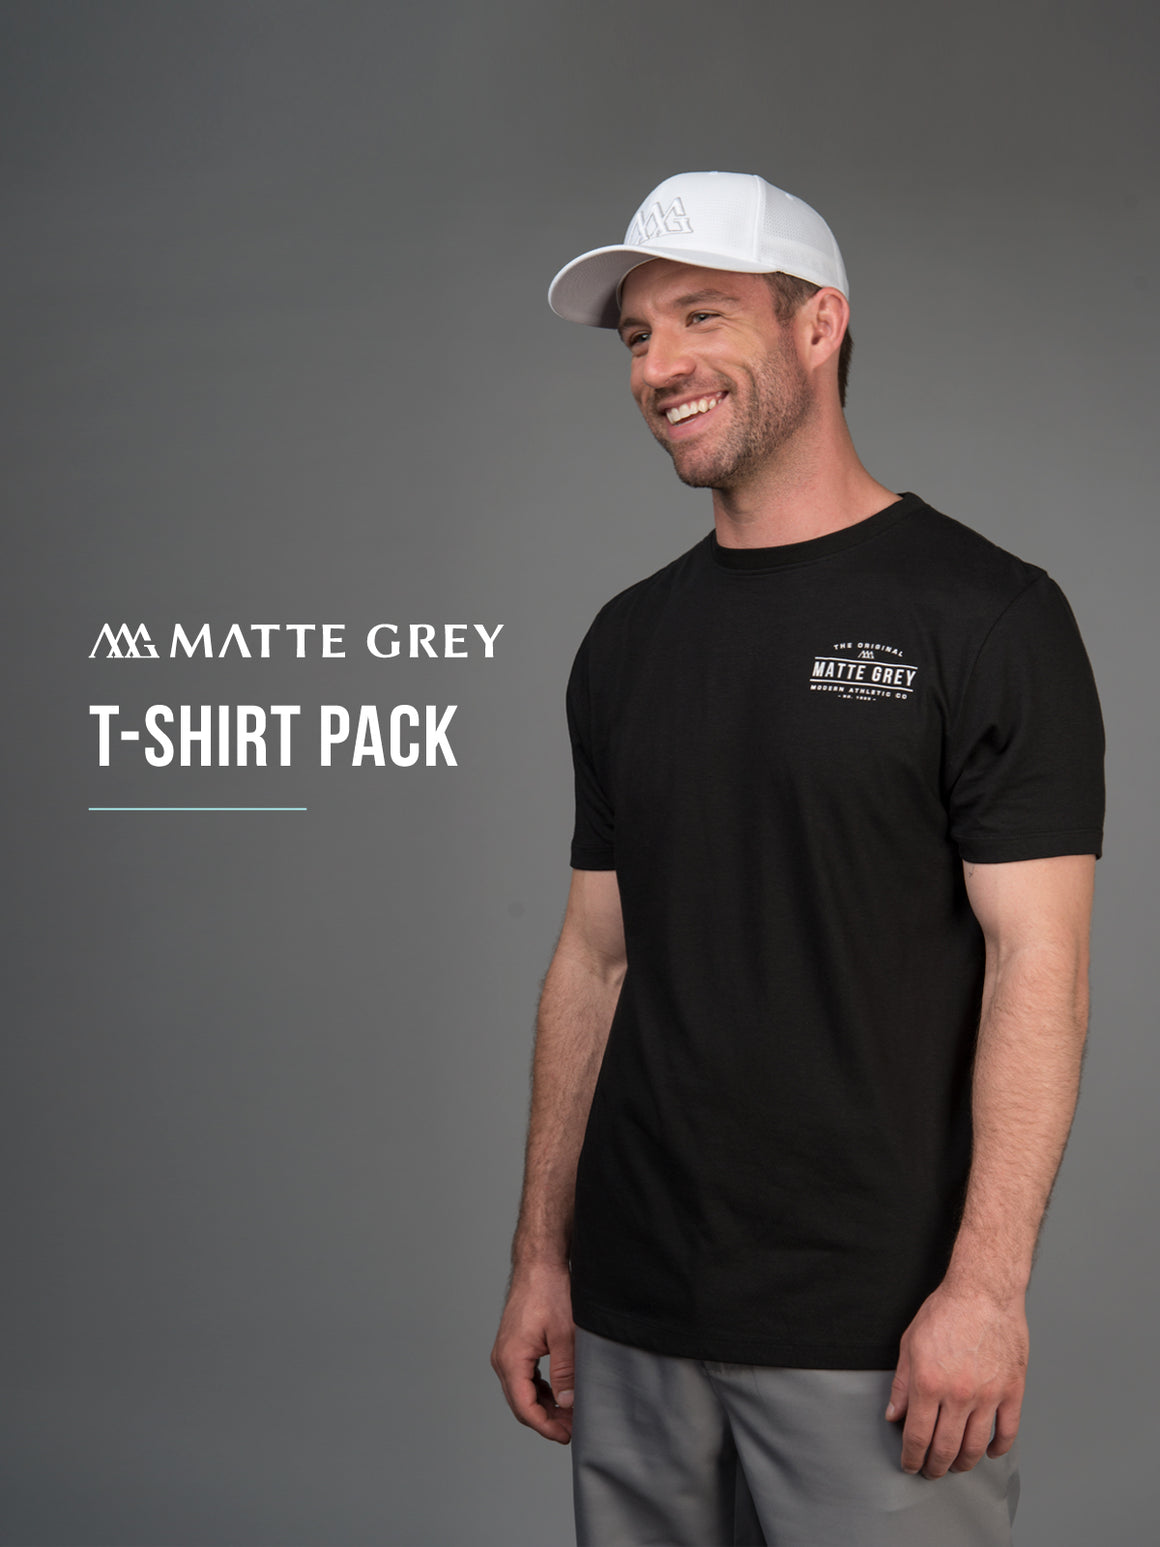 Matte Grey T-Shirt Sample Pack Flash Sale